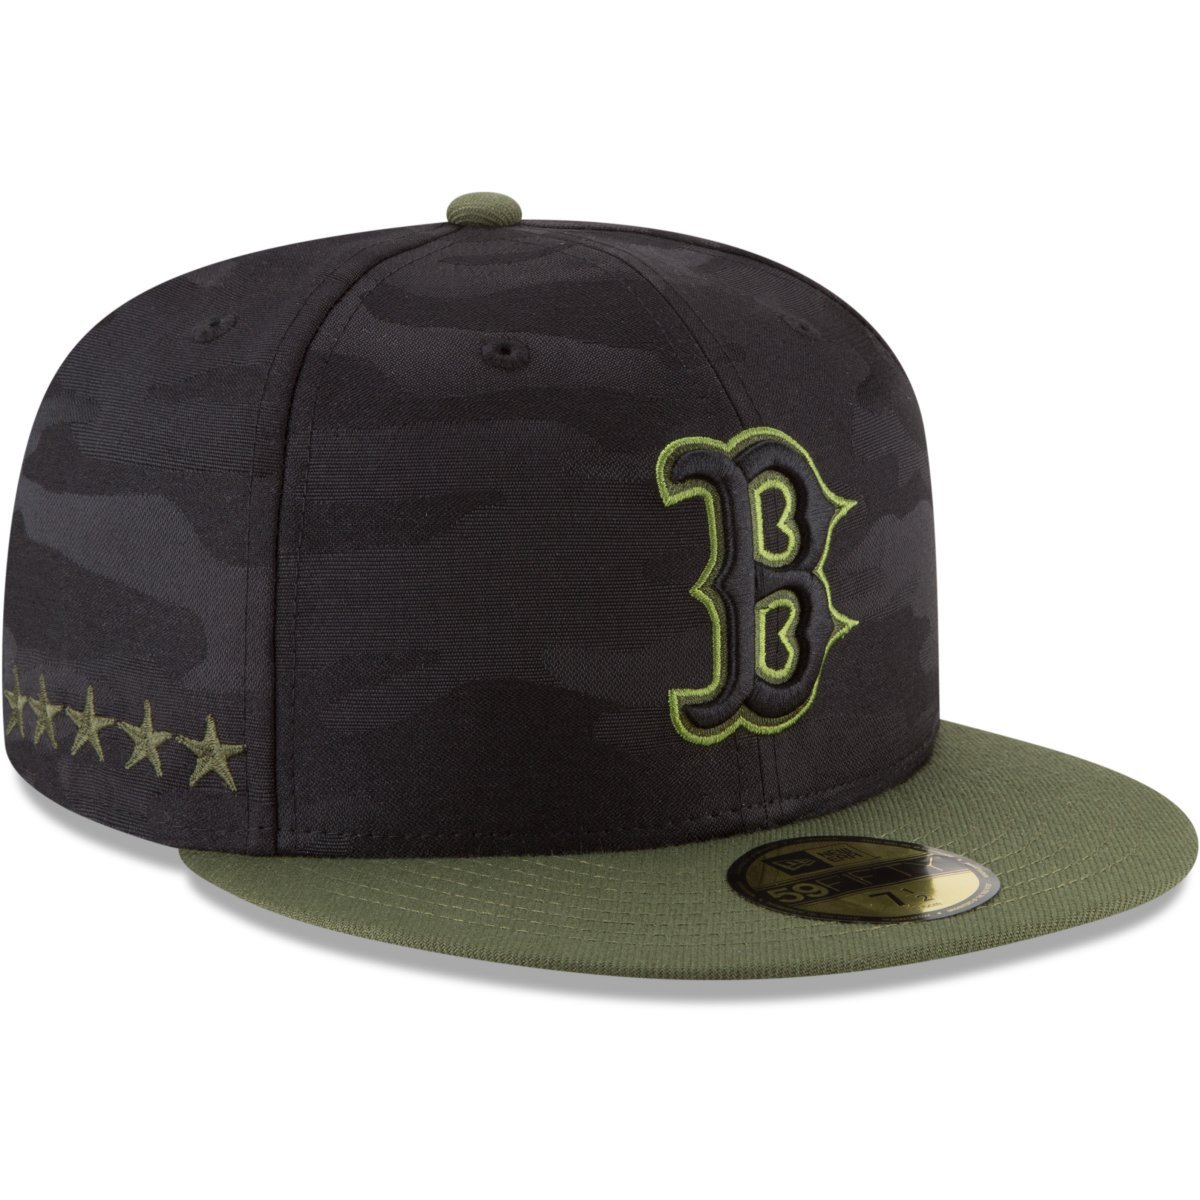 7b349eca4 Amazon.com: New Era Boston Black | Green Sox Memorial Day Fitted Cap  59fifty Basecap Limited Special Edition: Clothing